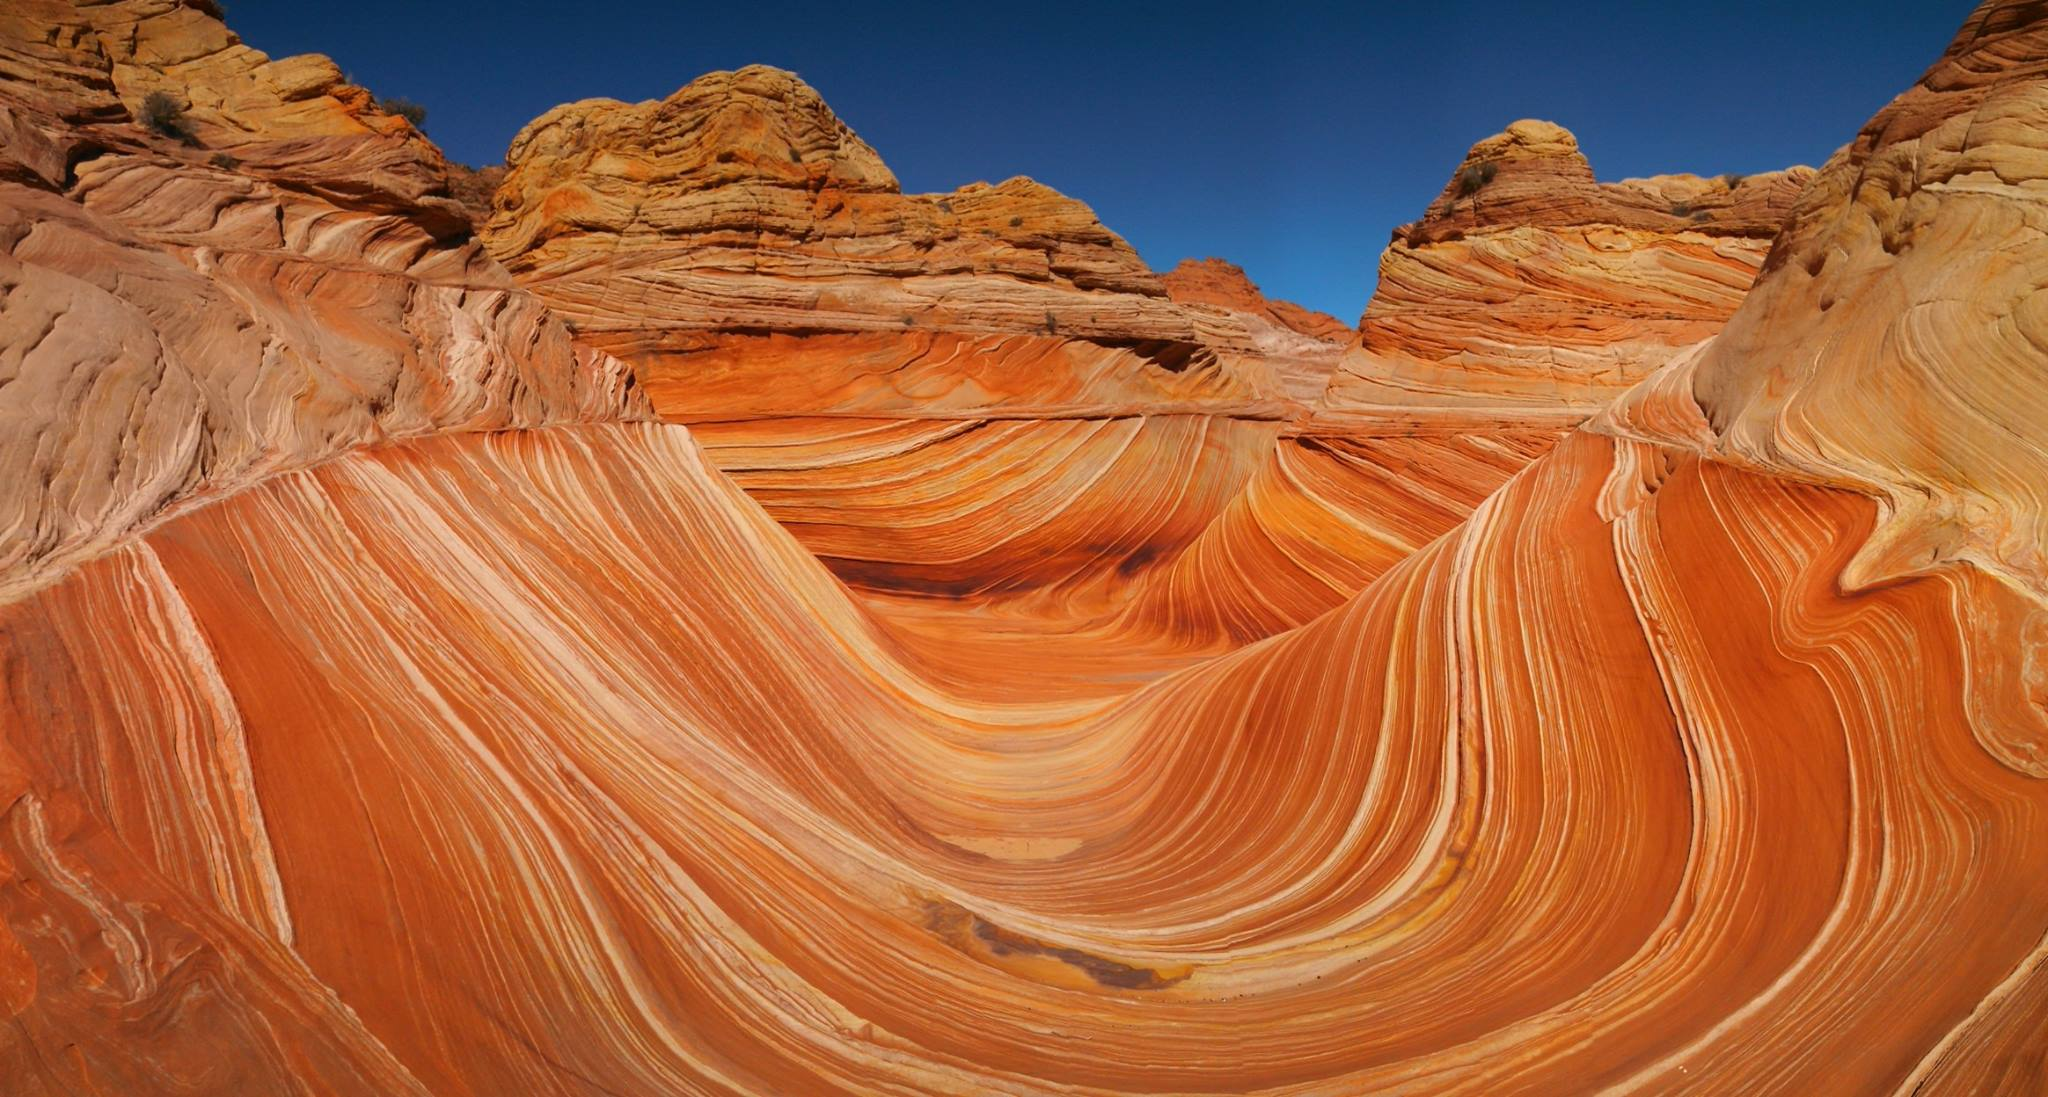 The Wave Tour - hike the 6-8 miles of Coyote Buttes North and the Wave